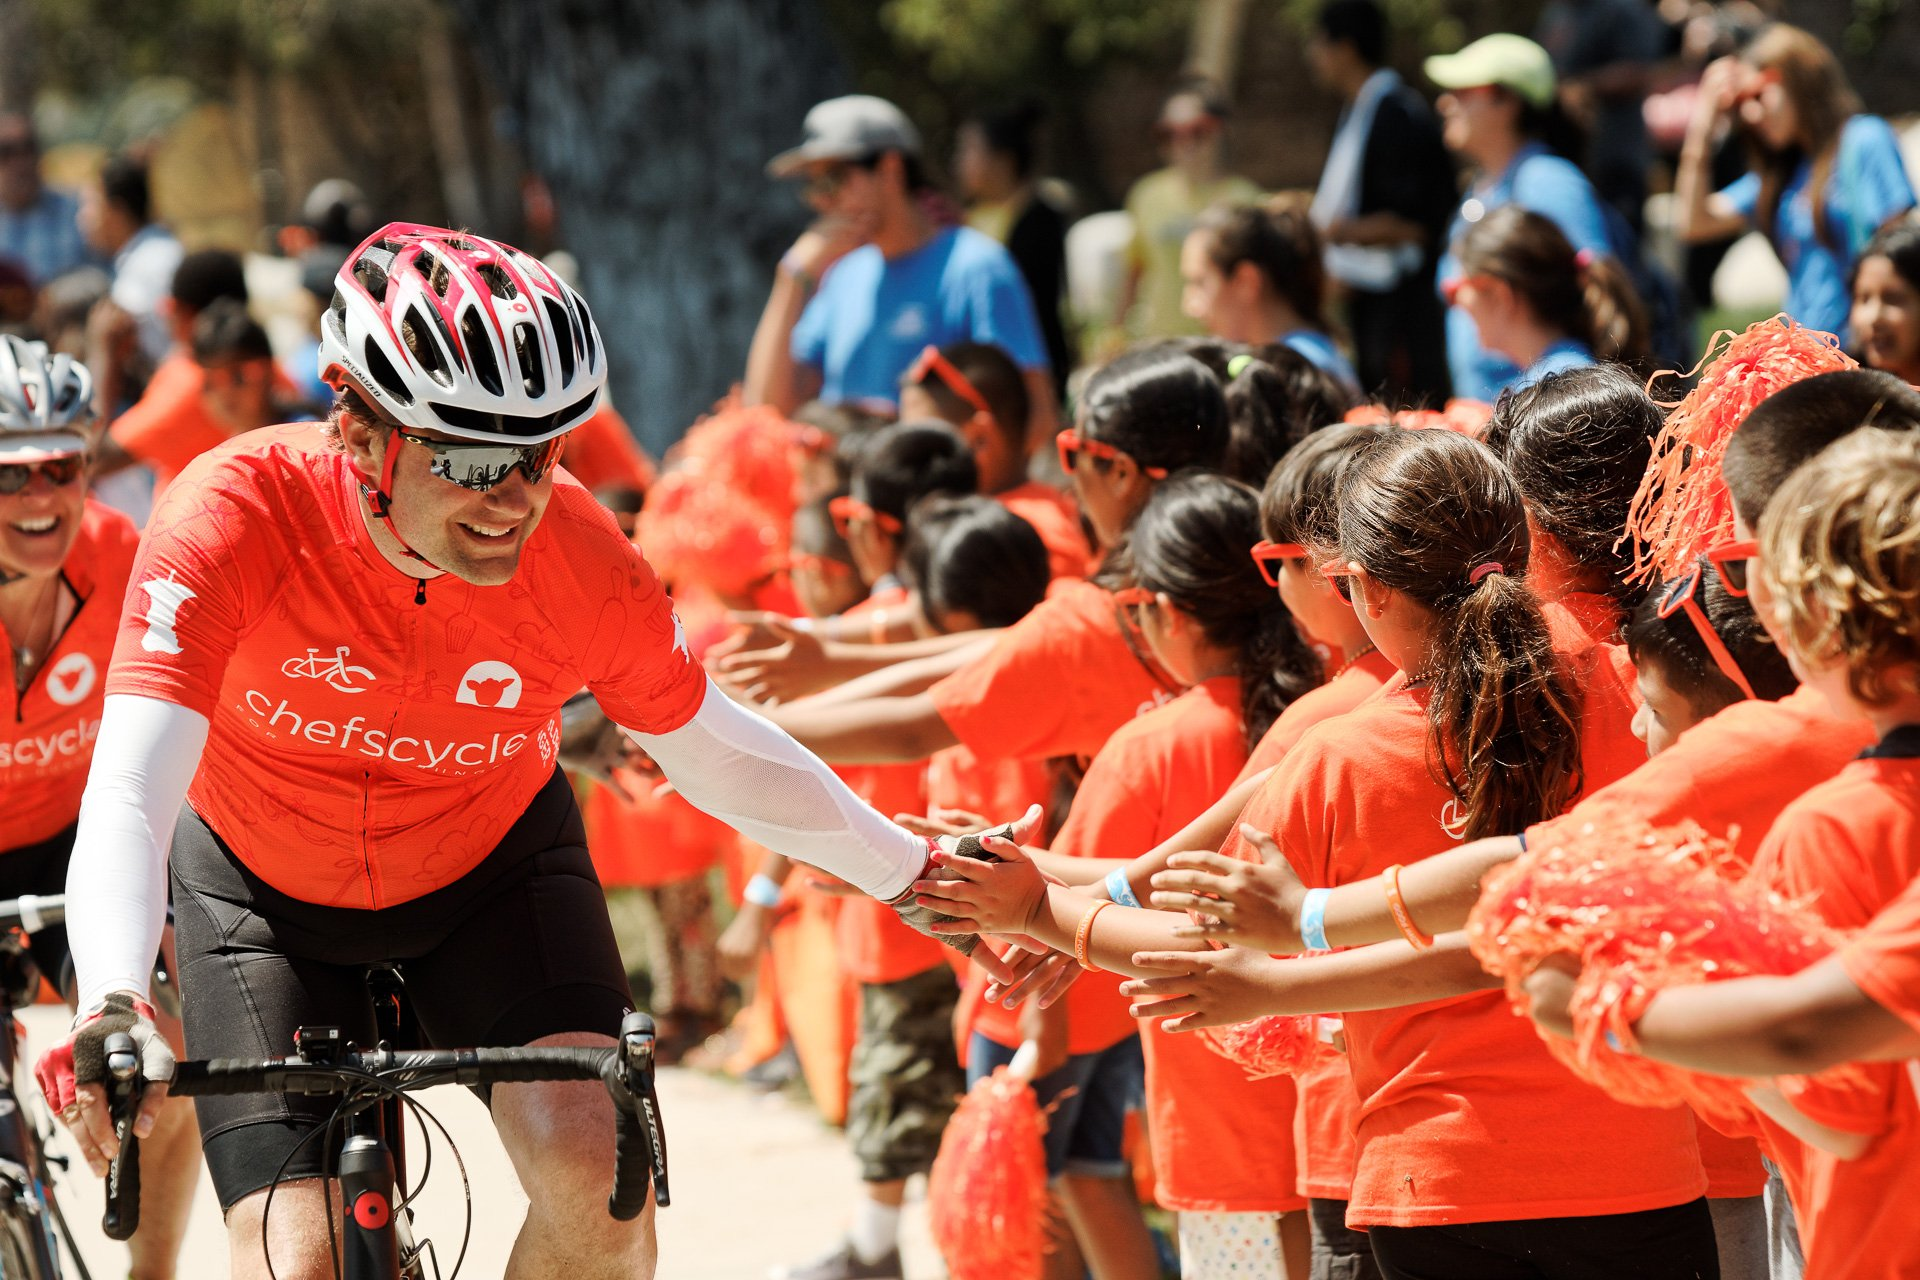 High-fives at the end of the race. (Photo by No Kid Hungry)